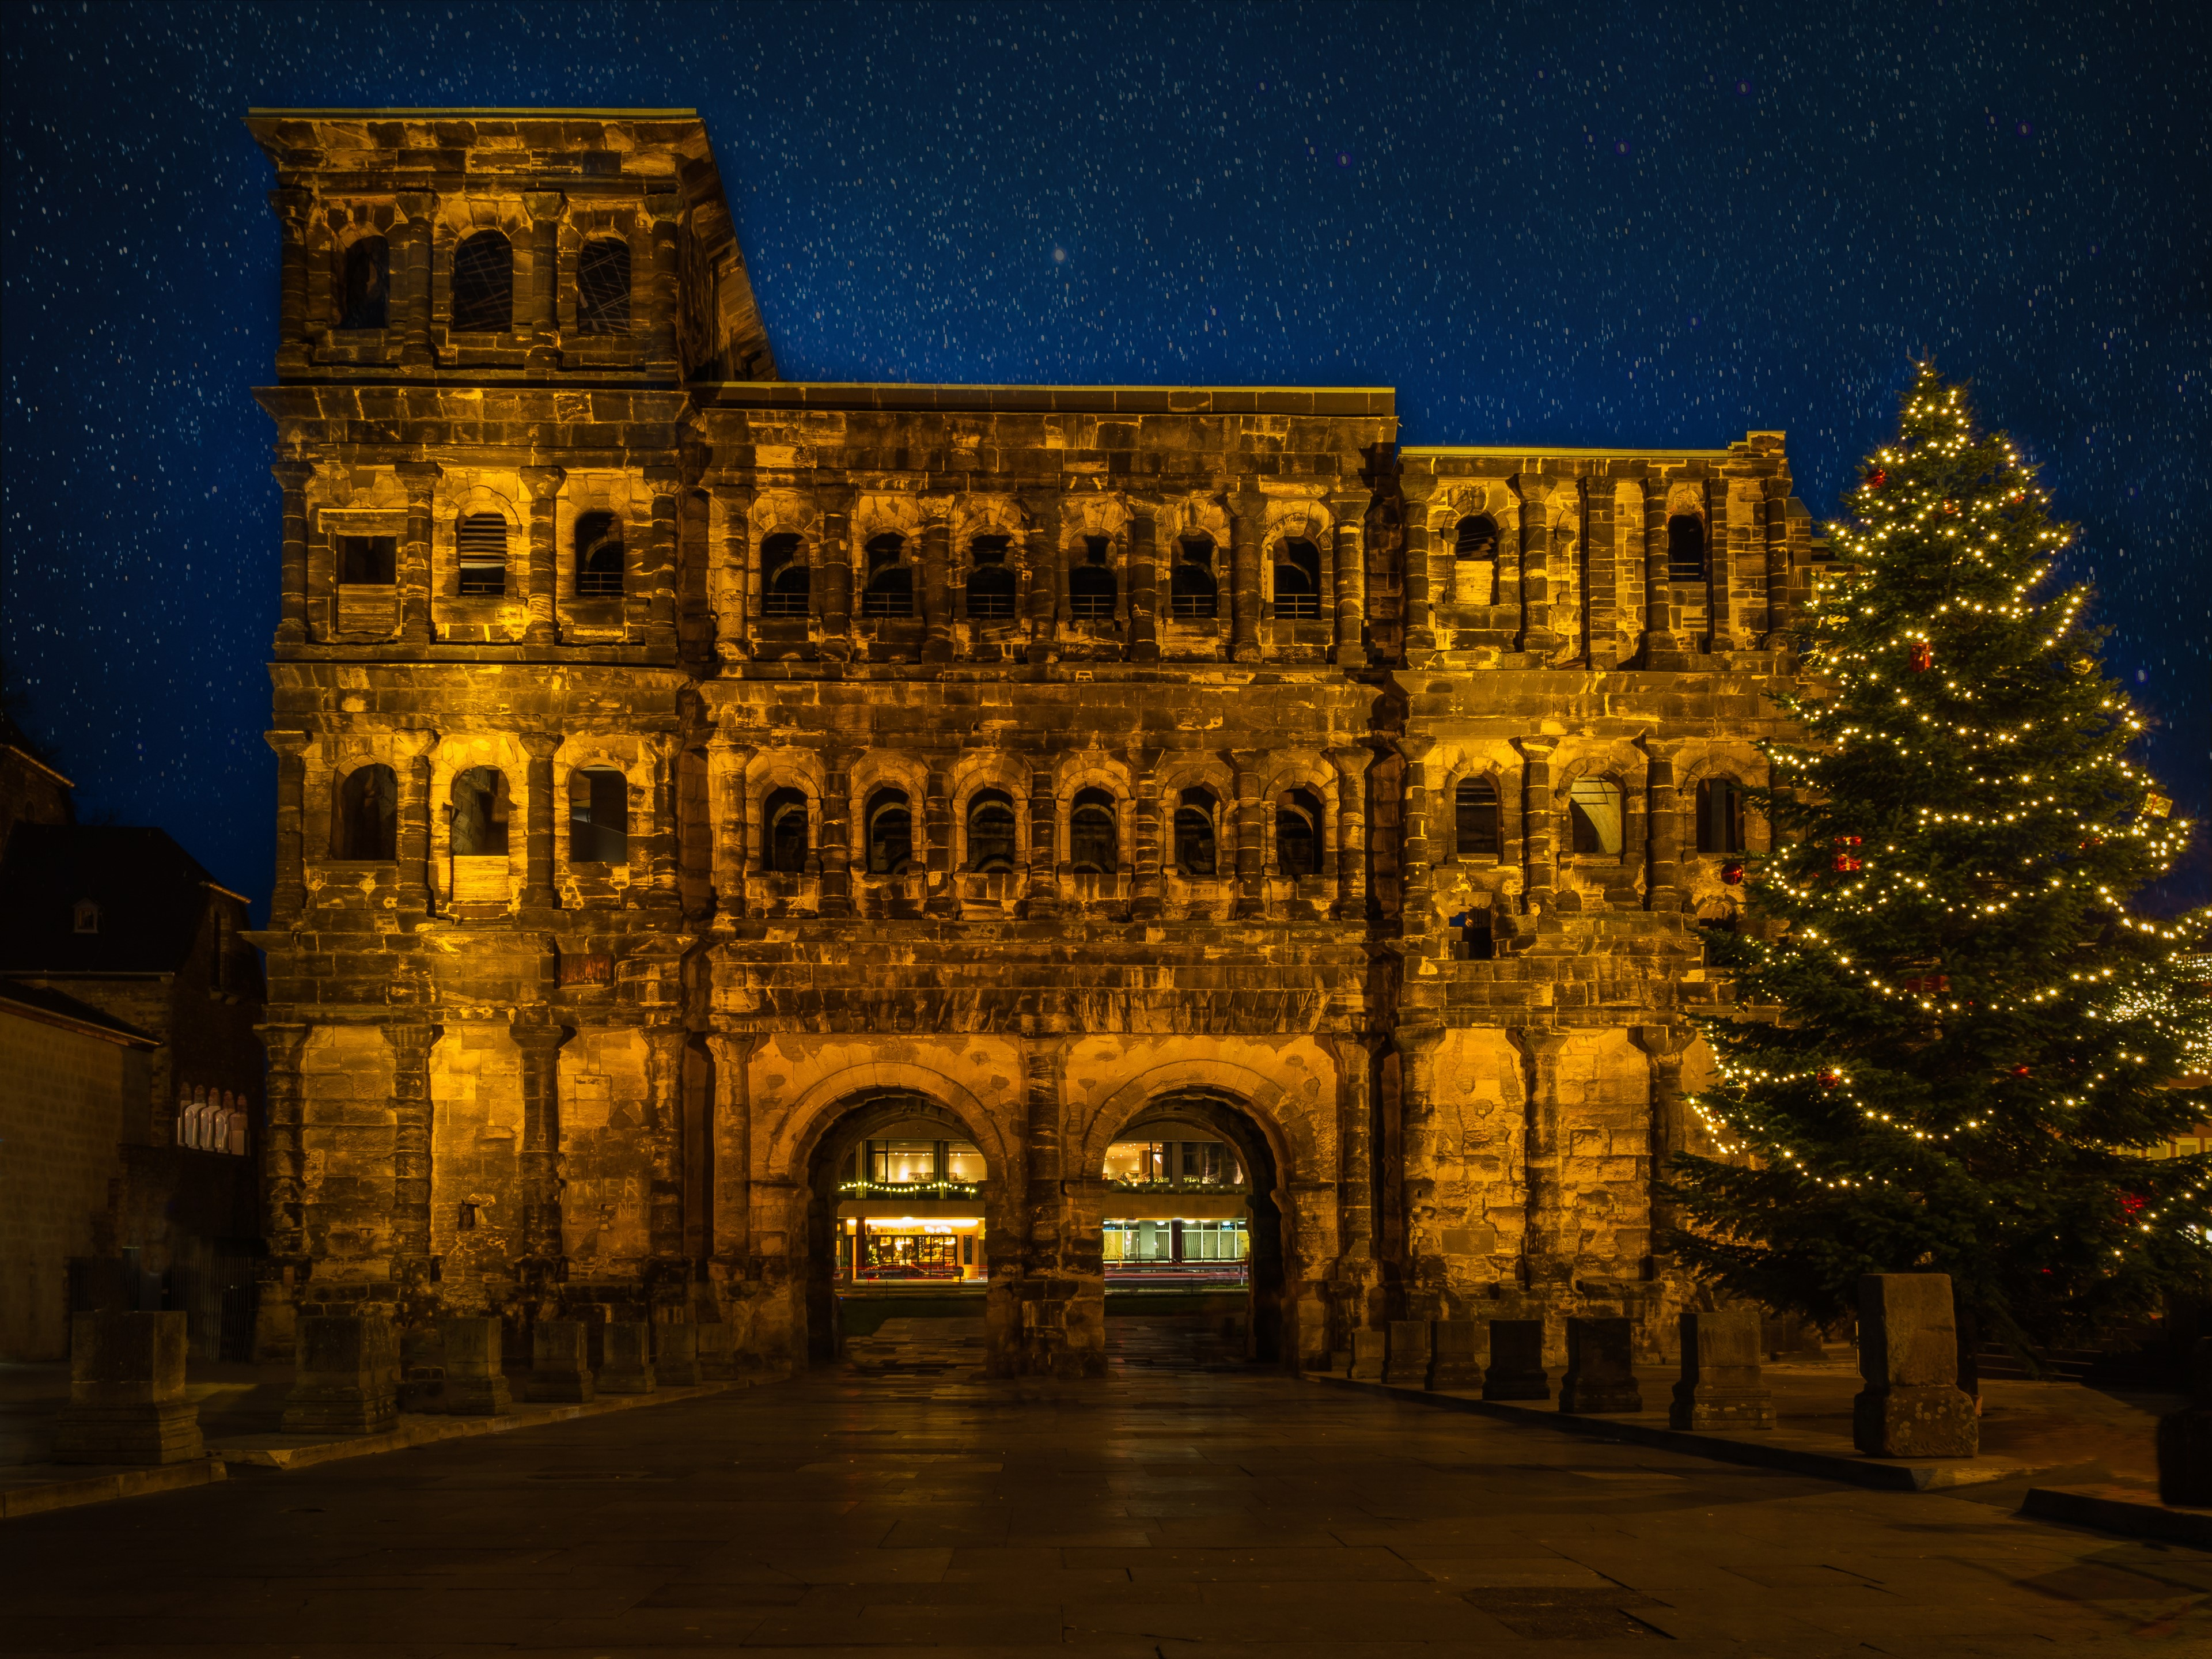 Christmas Market In Trier Germany